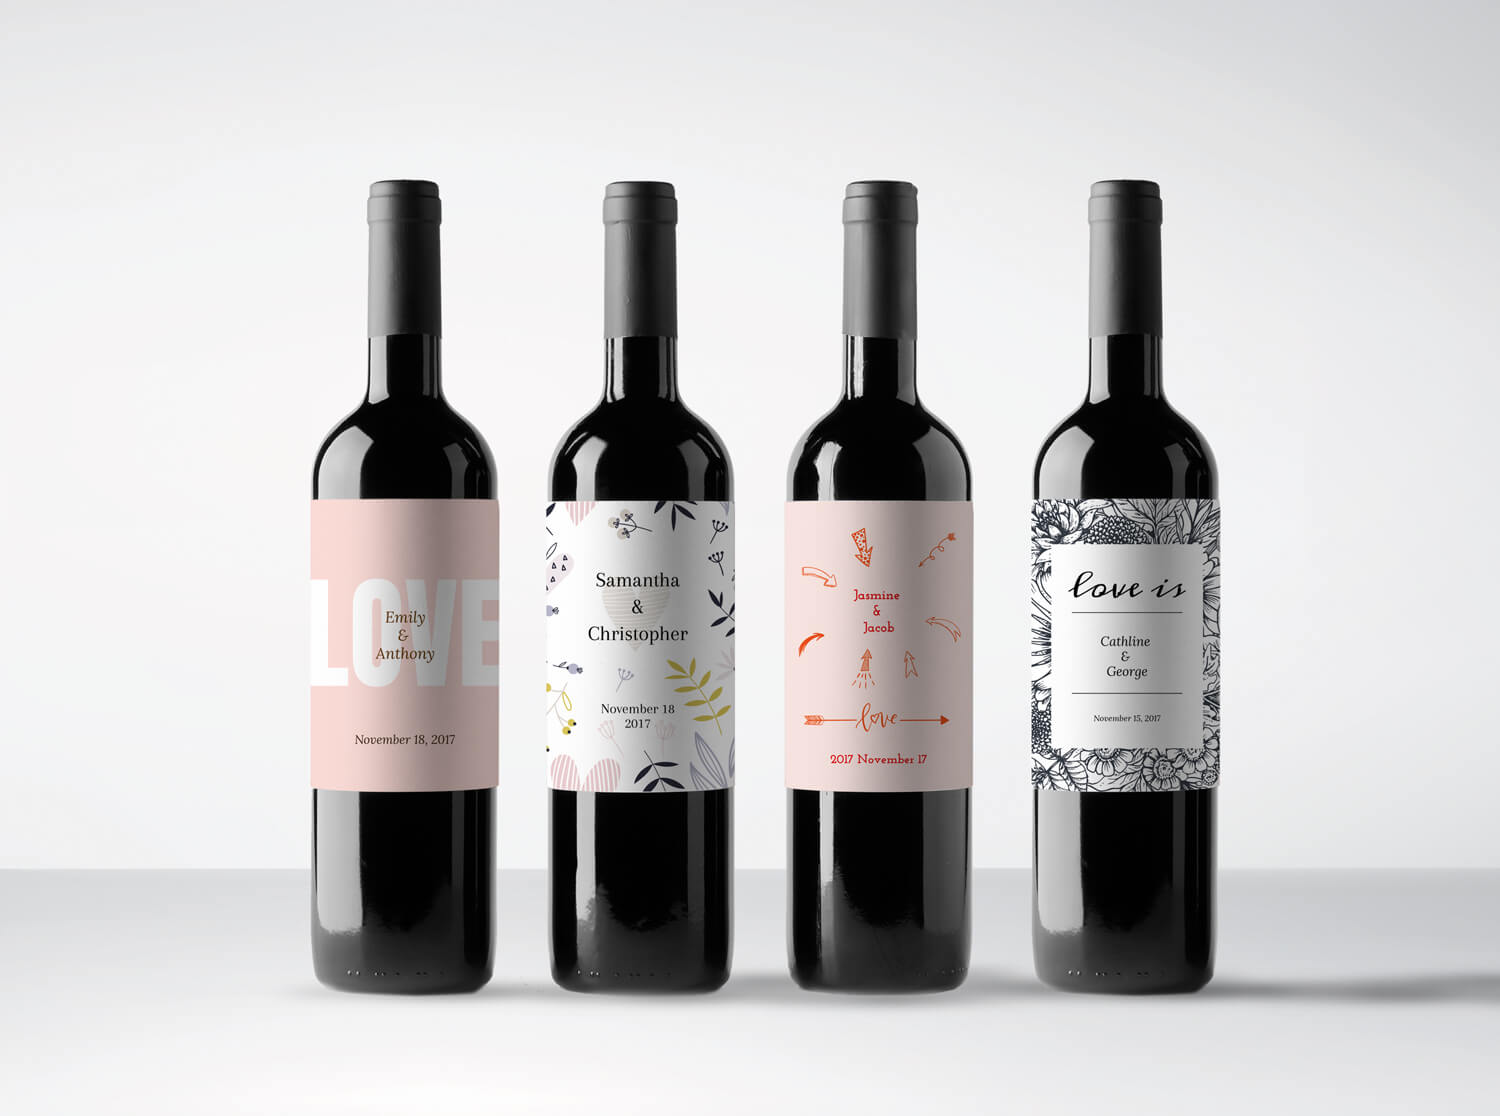 Boho Loves - My Uniq Wines Personalised Wines for Bespoke Weddings